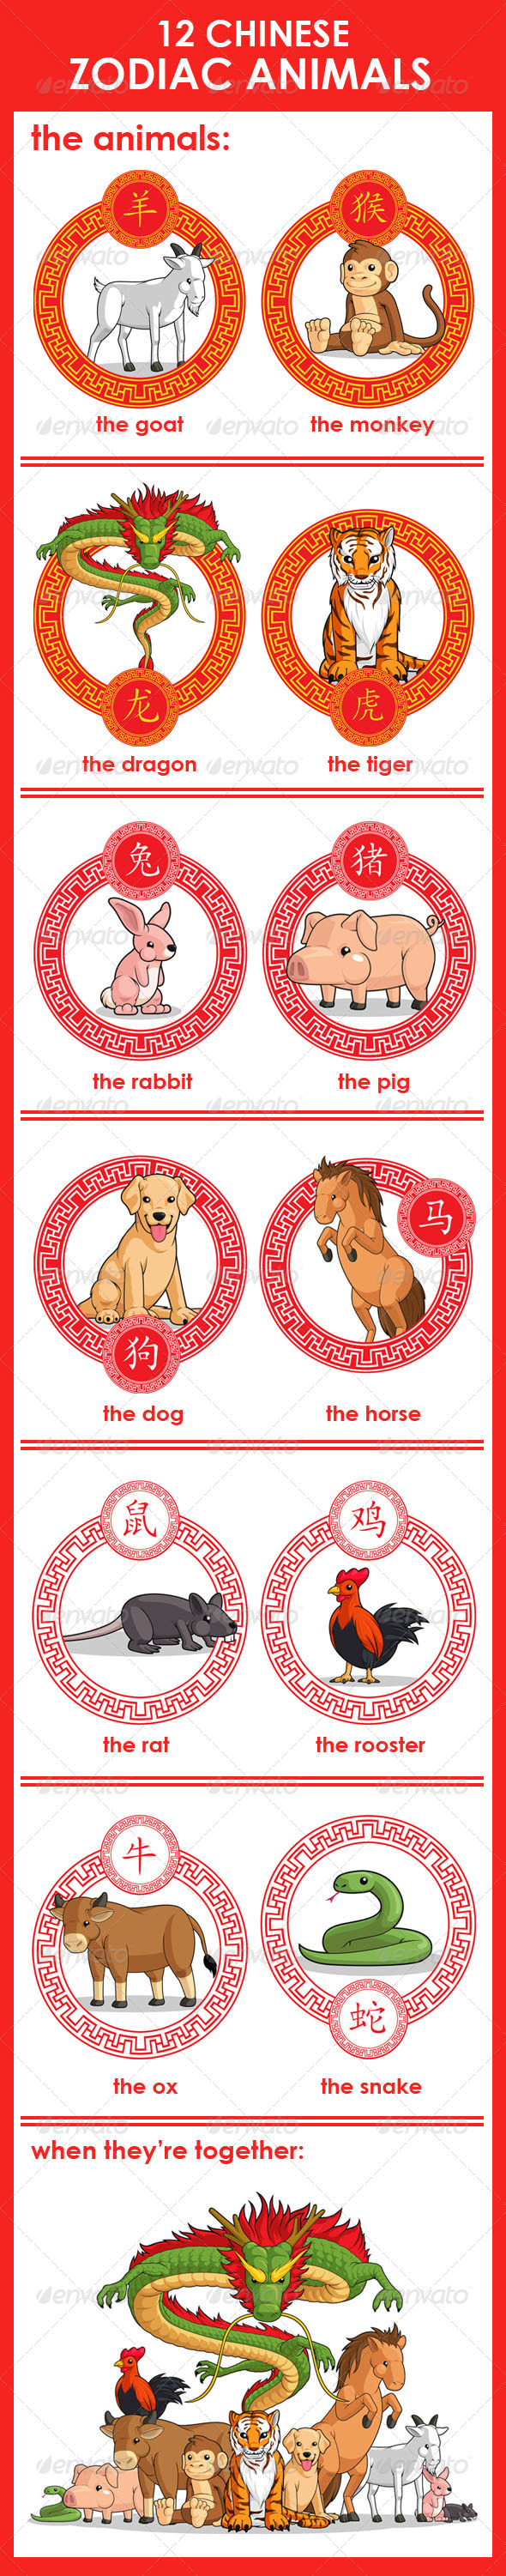 12 Chinese Zodiac Animals